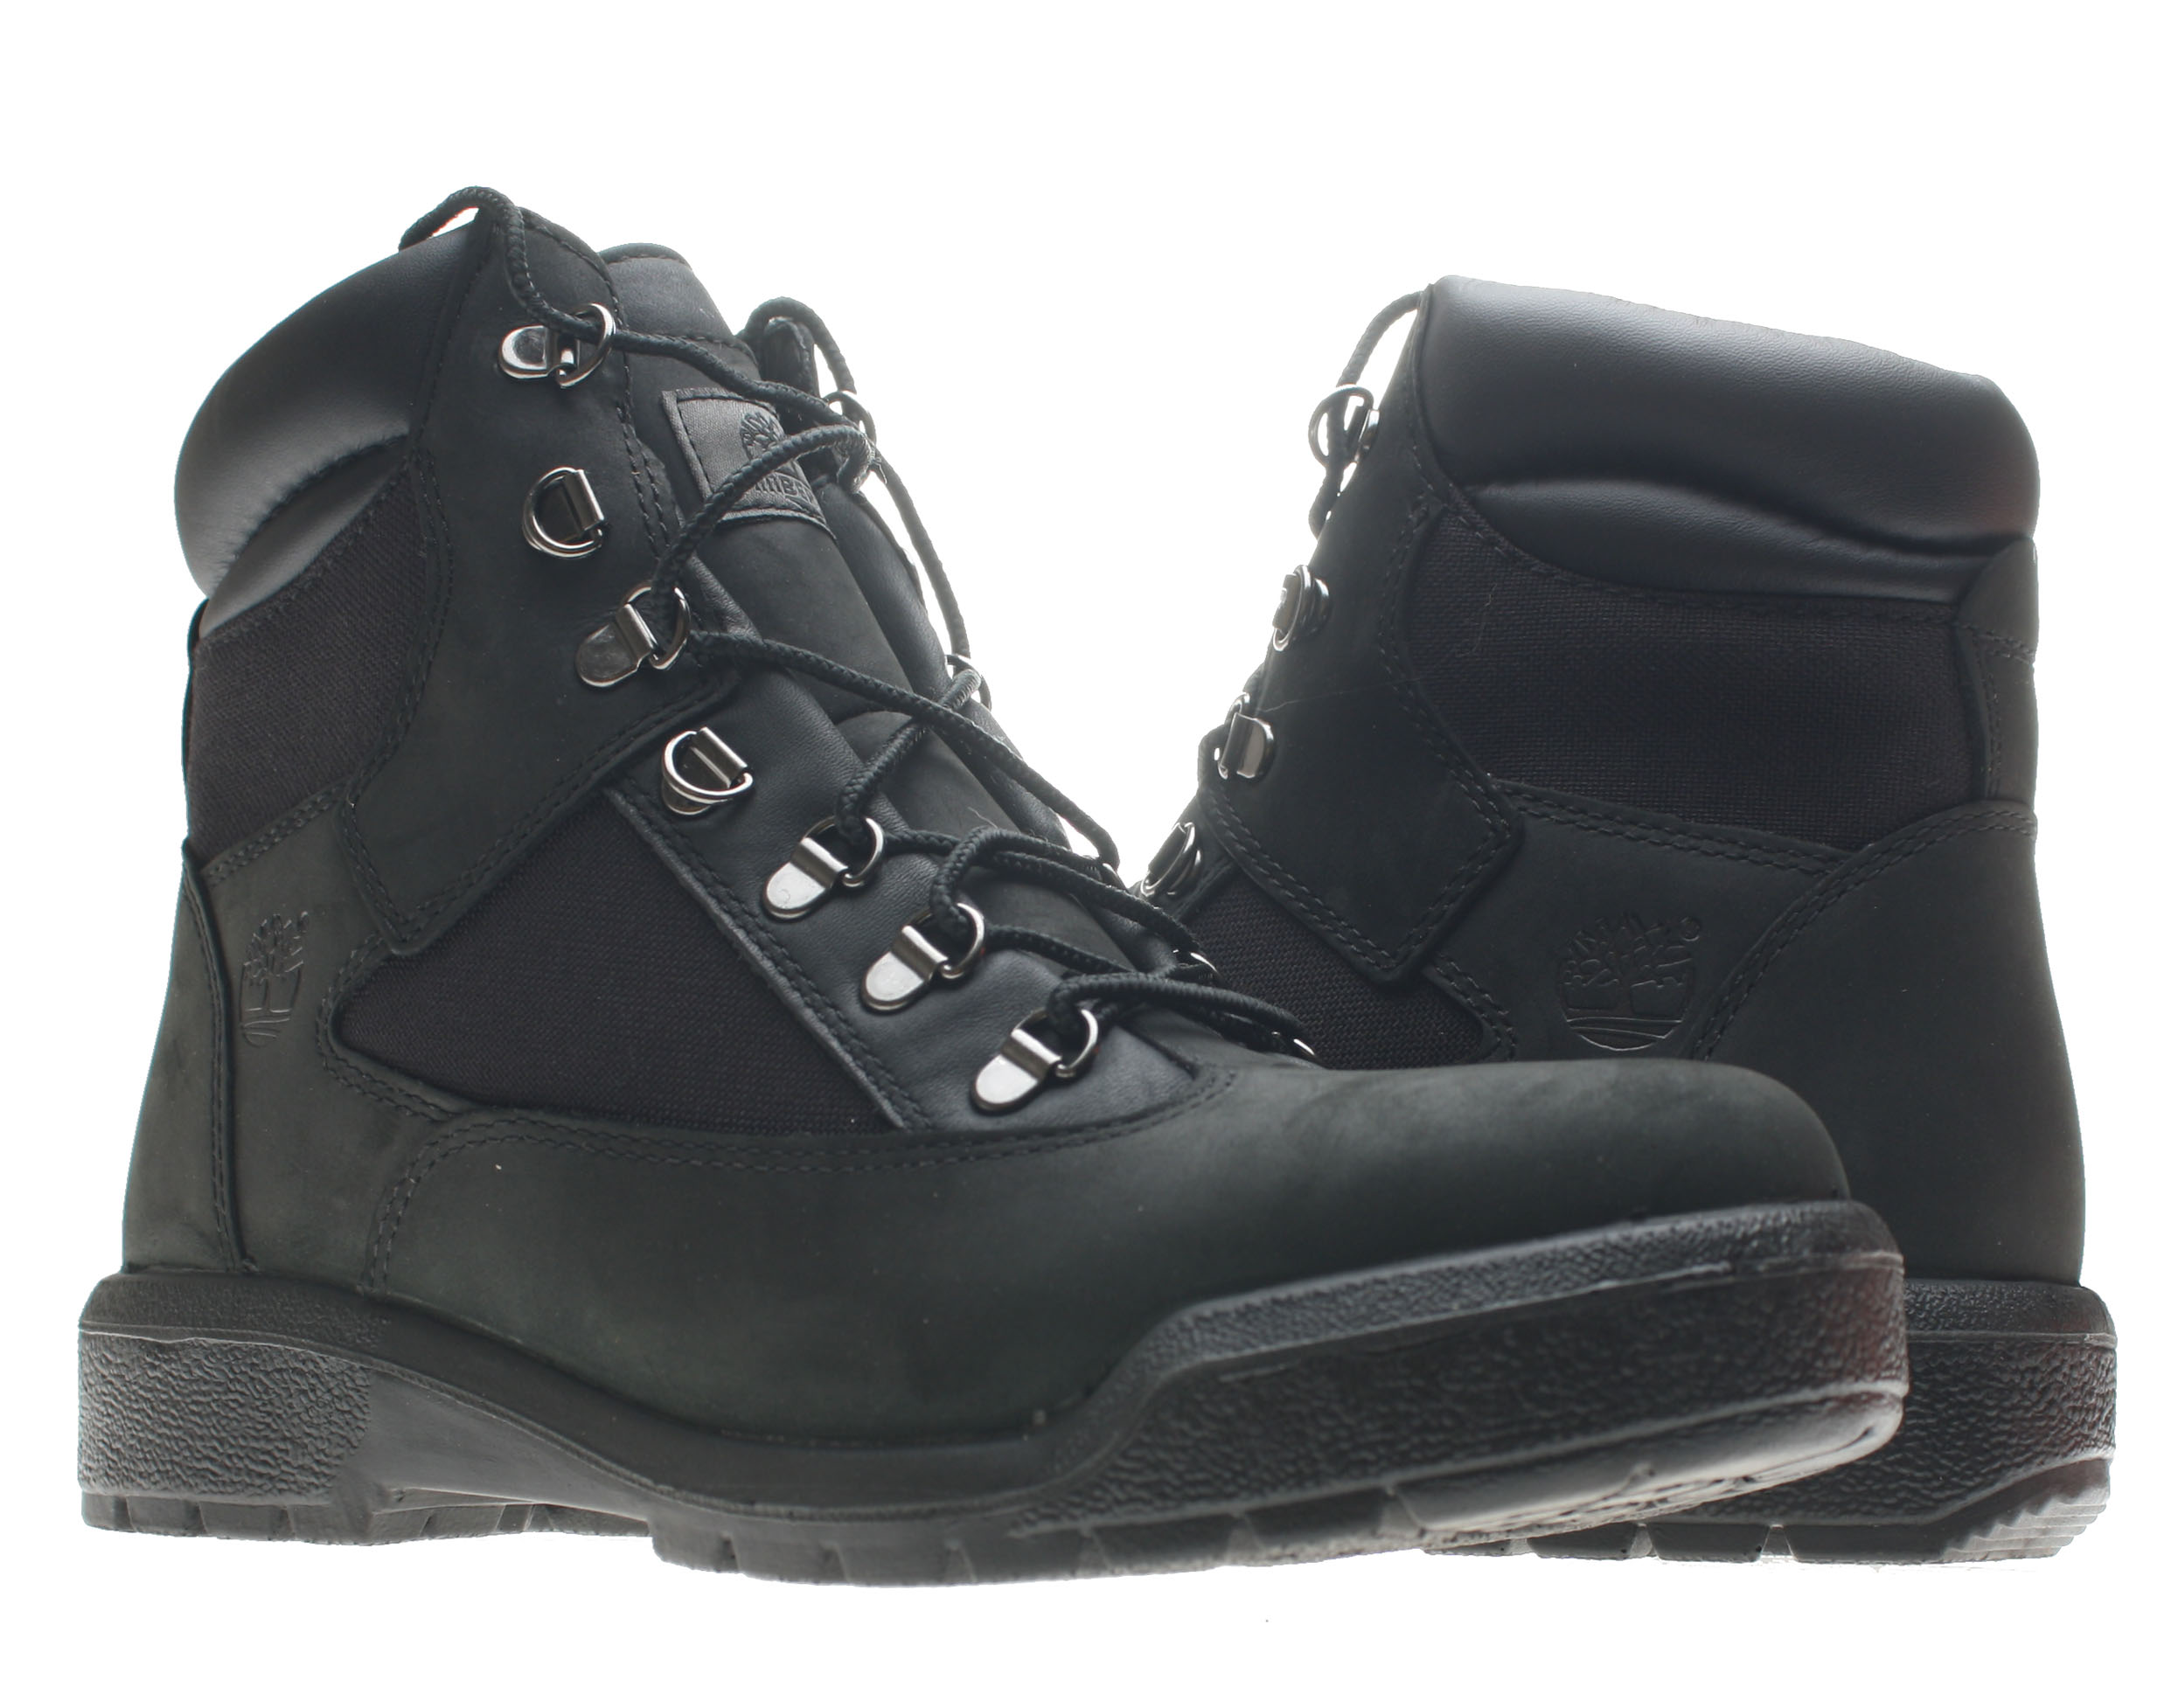 Timberland 6-Inch Waterproof Field Boot Black Men's Boots 98518 Size 8.5 by Timberland